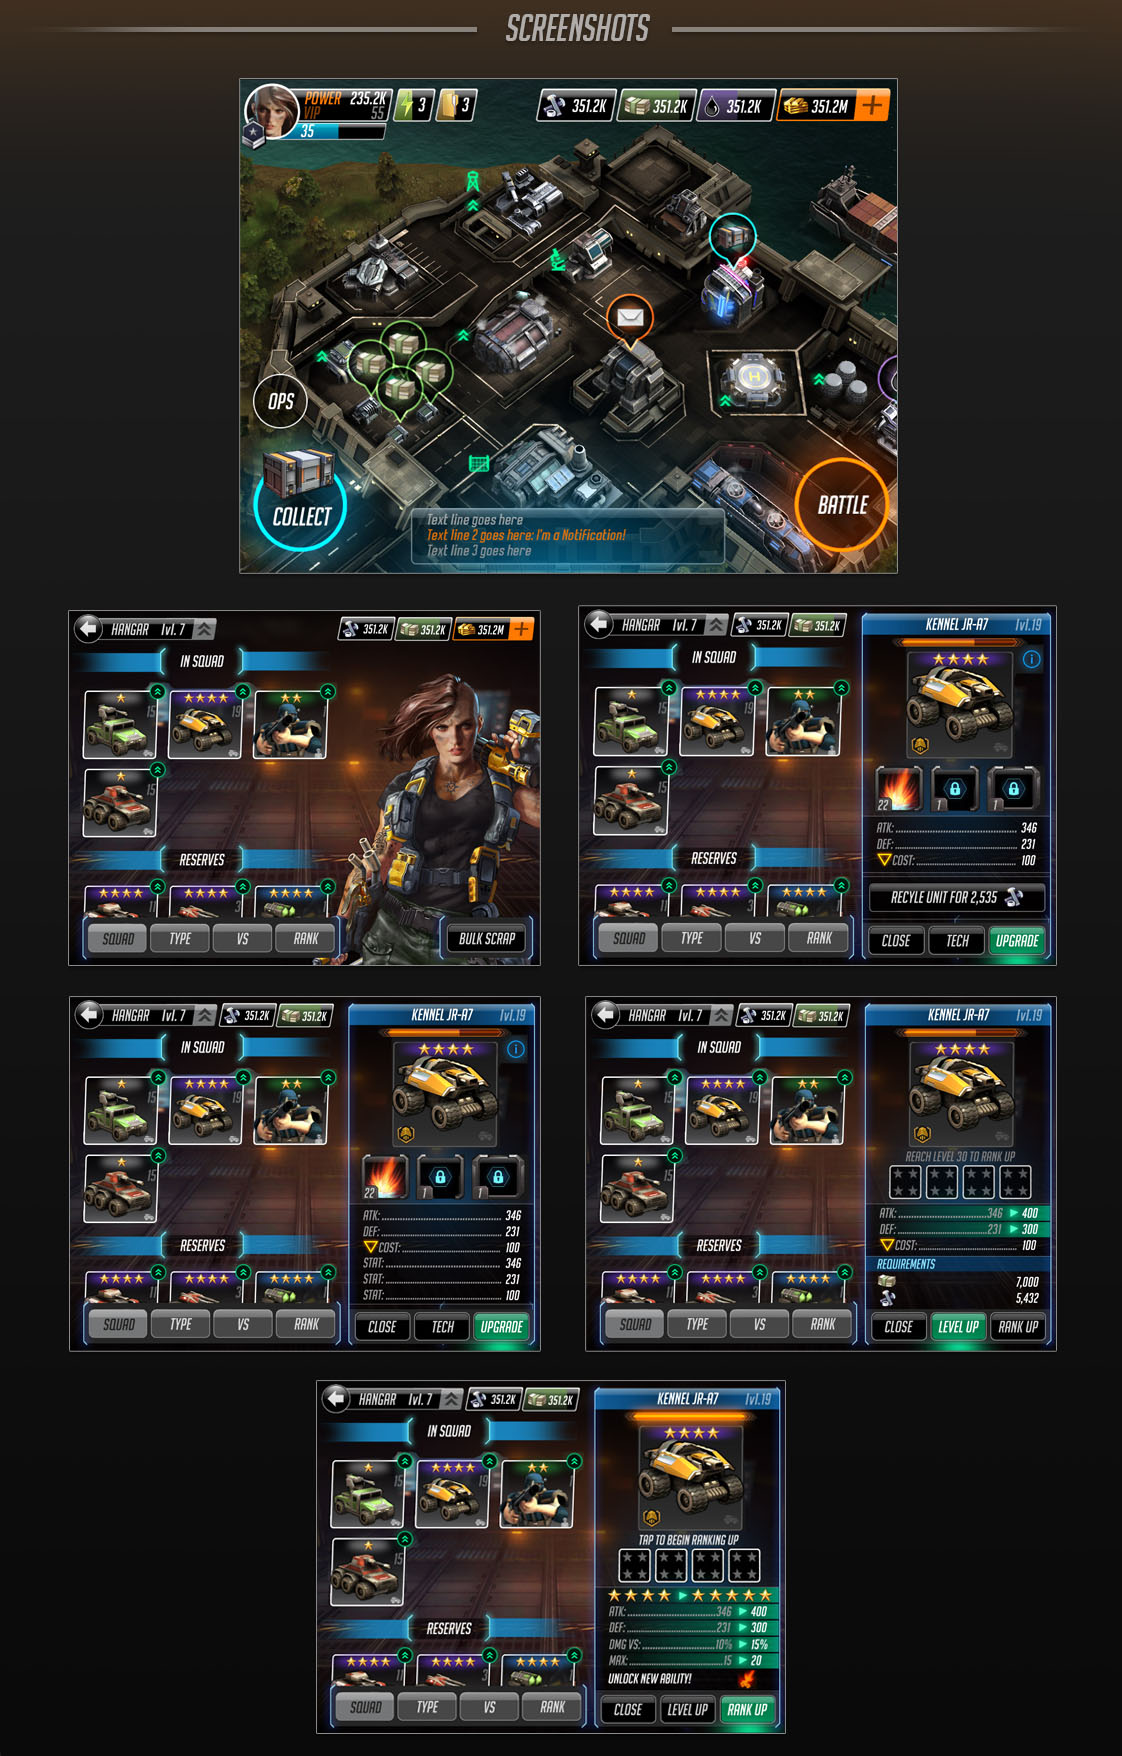 Homebase UI and Hangar UI; the Hangar is the primary place for players to view, upgrade, and add abilities to their units.